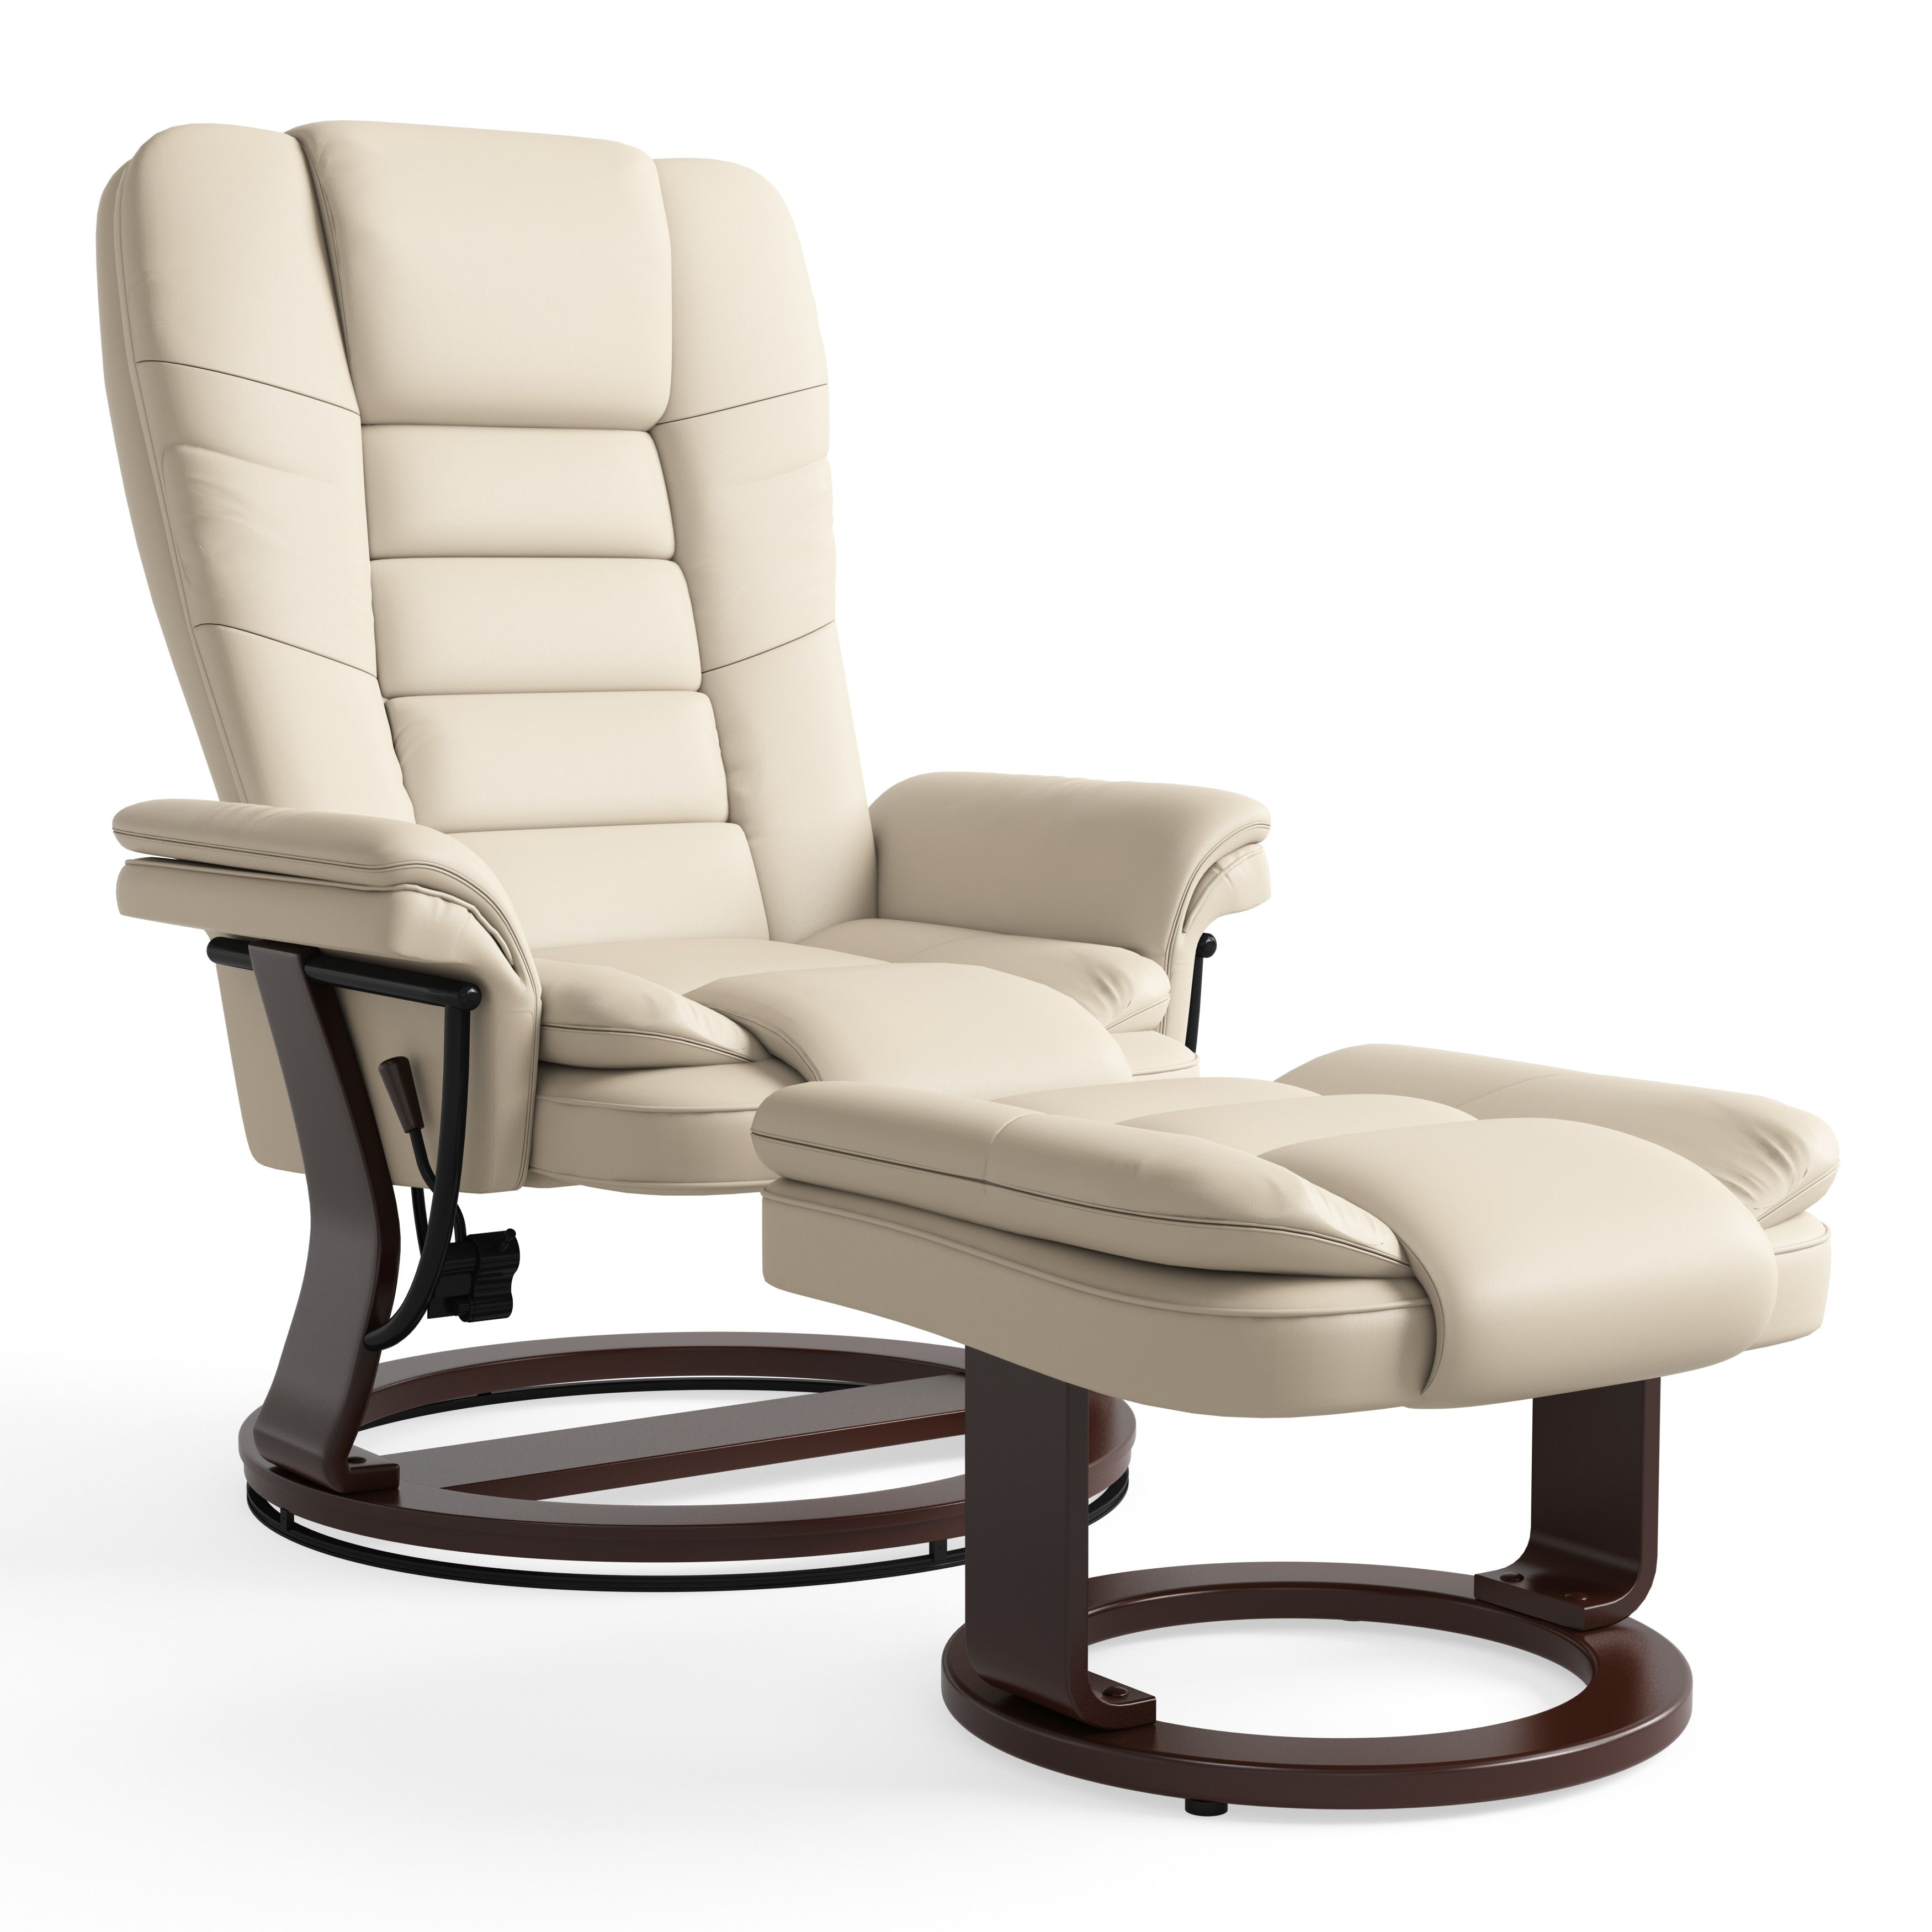 Swell Copper Grove Gunnison Beige Bonded Leather Recliner Theyellowbook Wood Chair Design Ideas Theyellowbookinfo